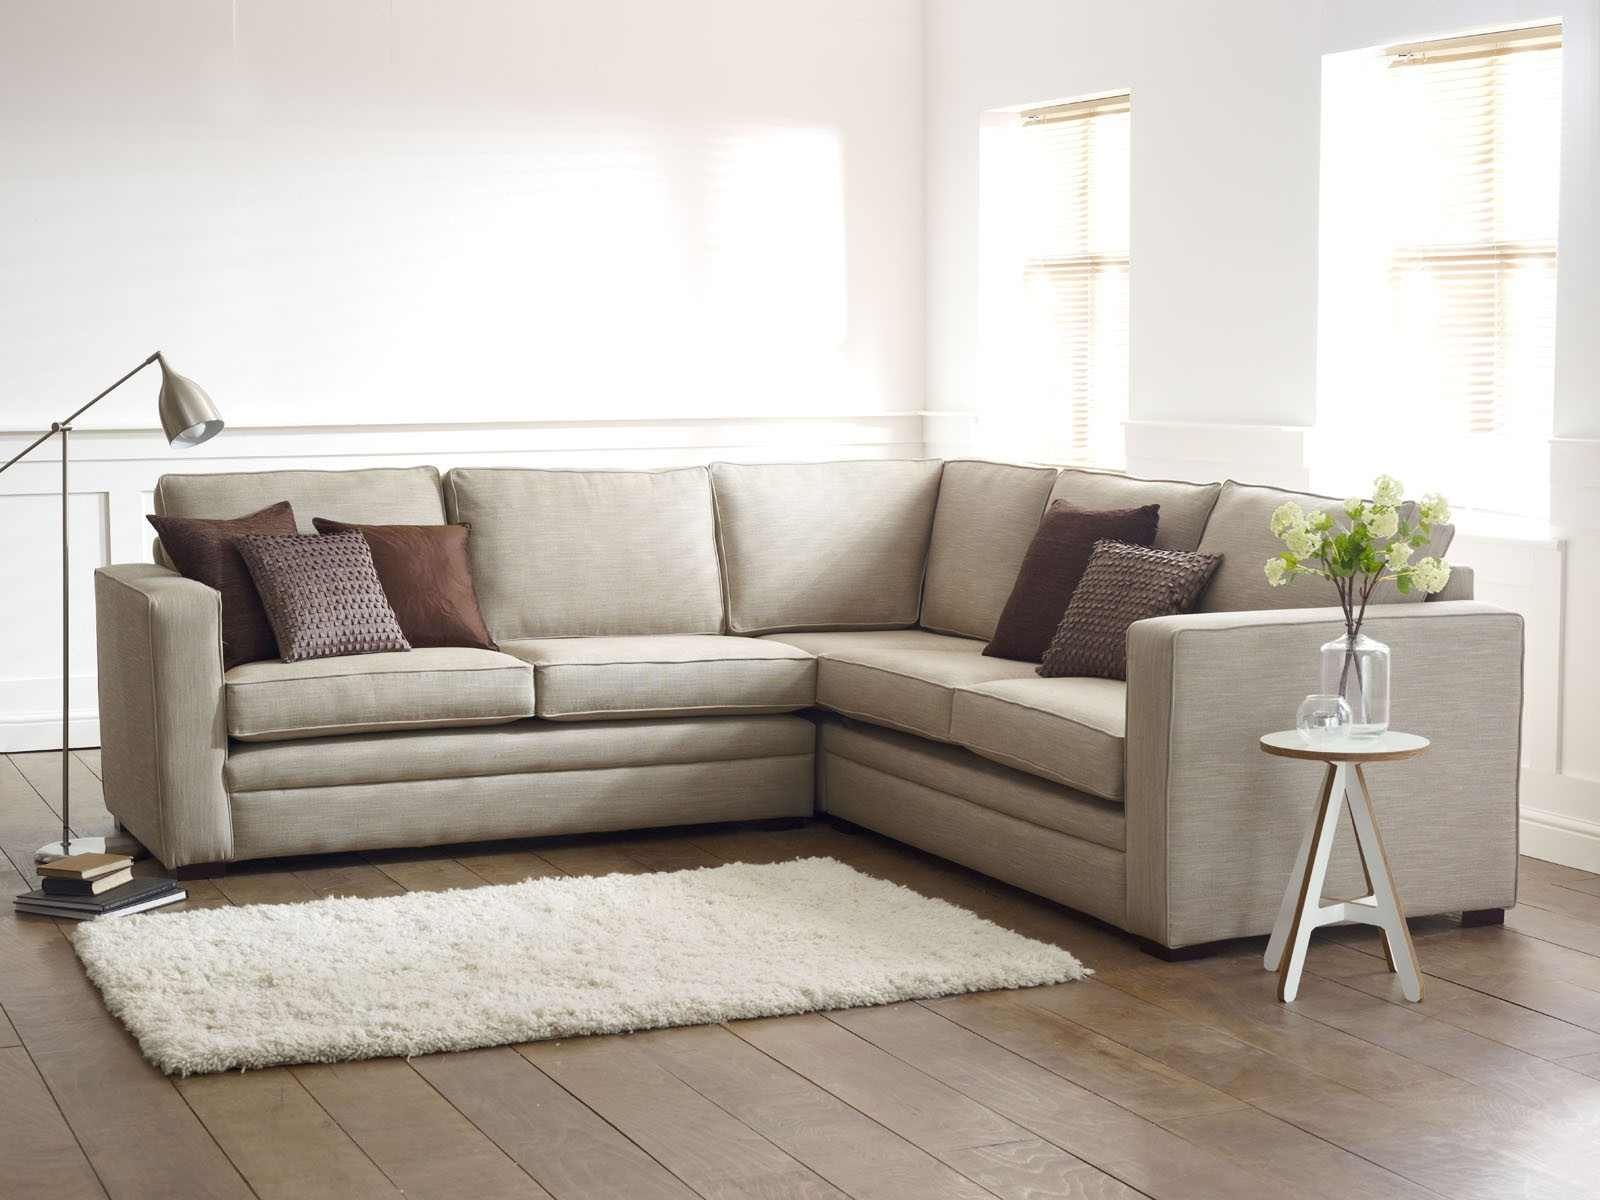 Best L Shaped Sleeper Sofa